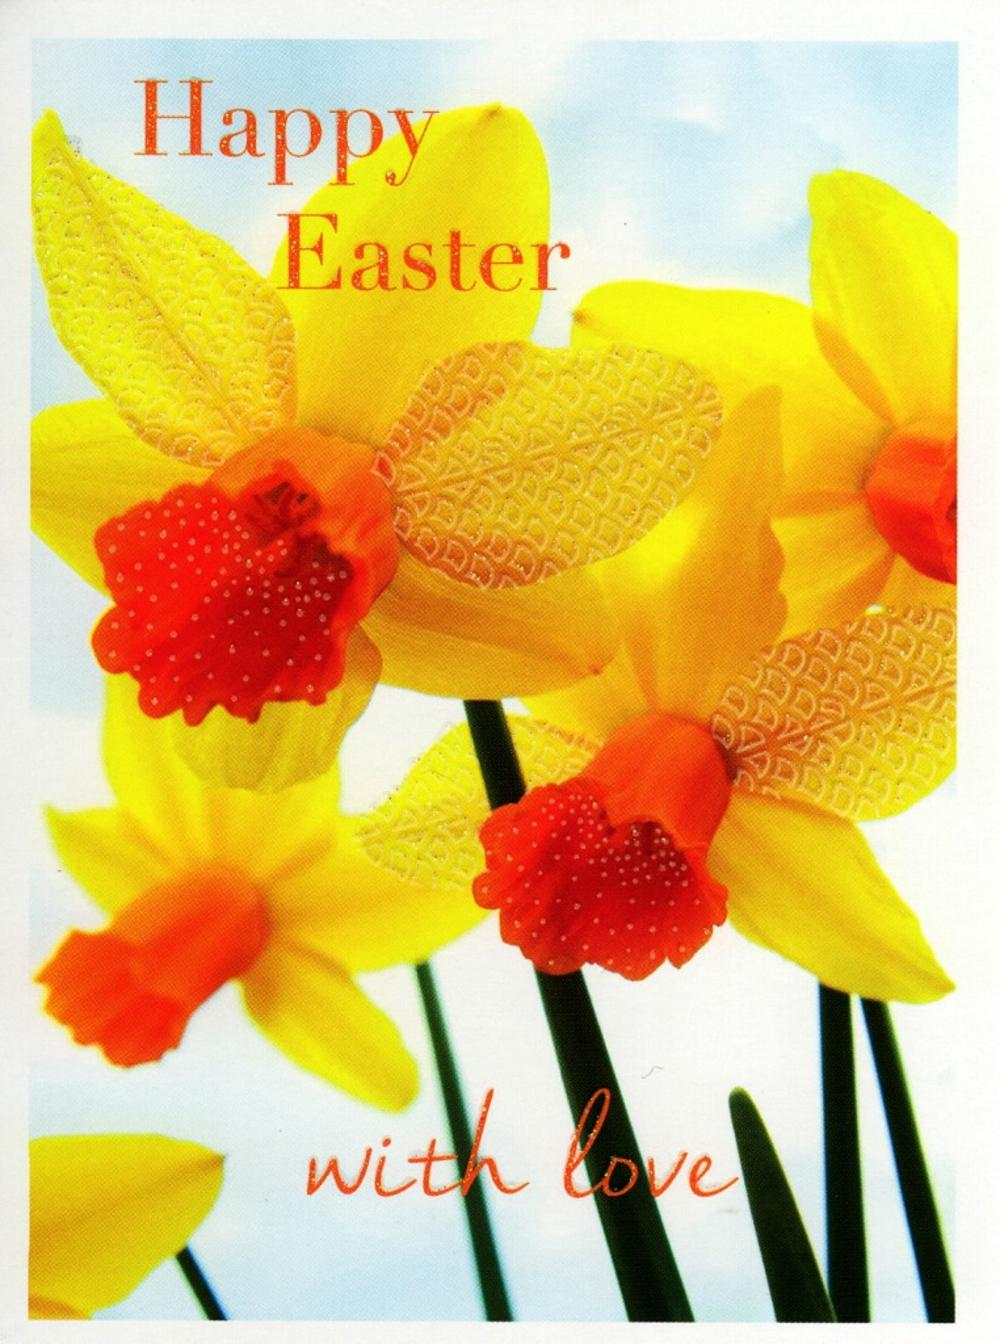 Pack Of 5 Daffodil Happy Easter Greetings Cards Cards Love Kates